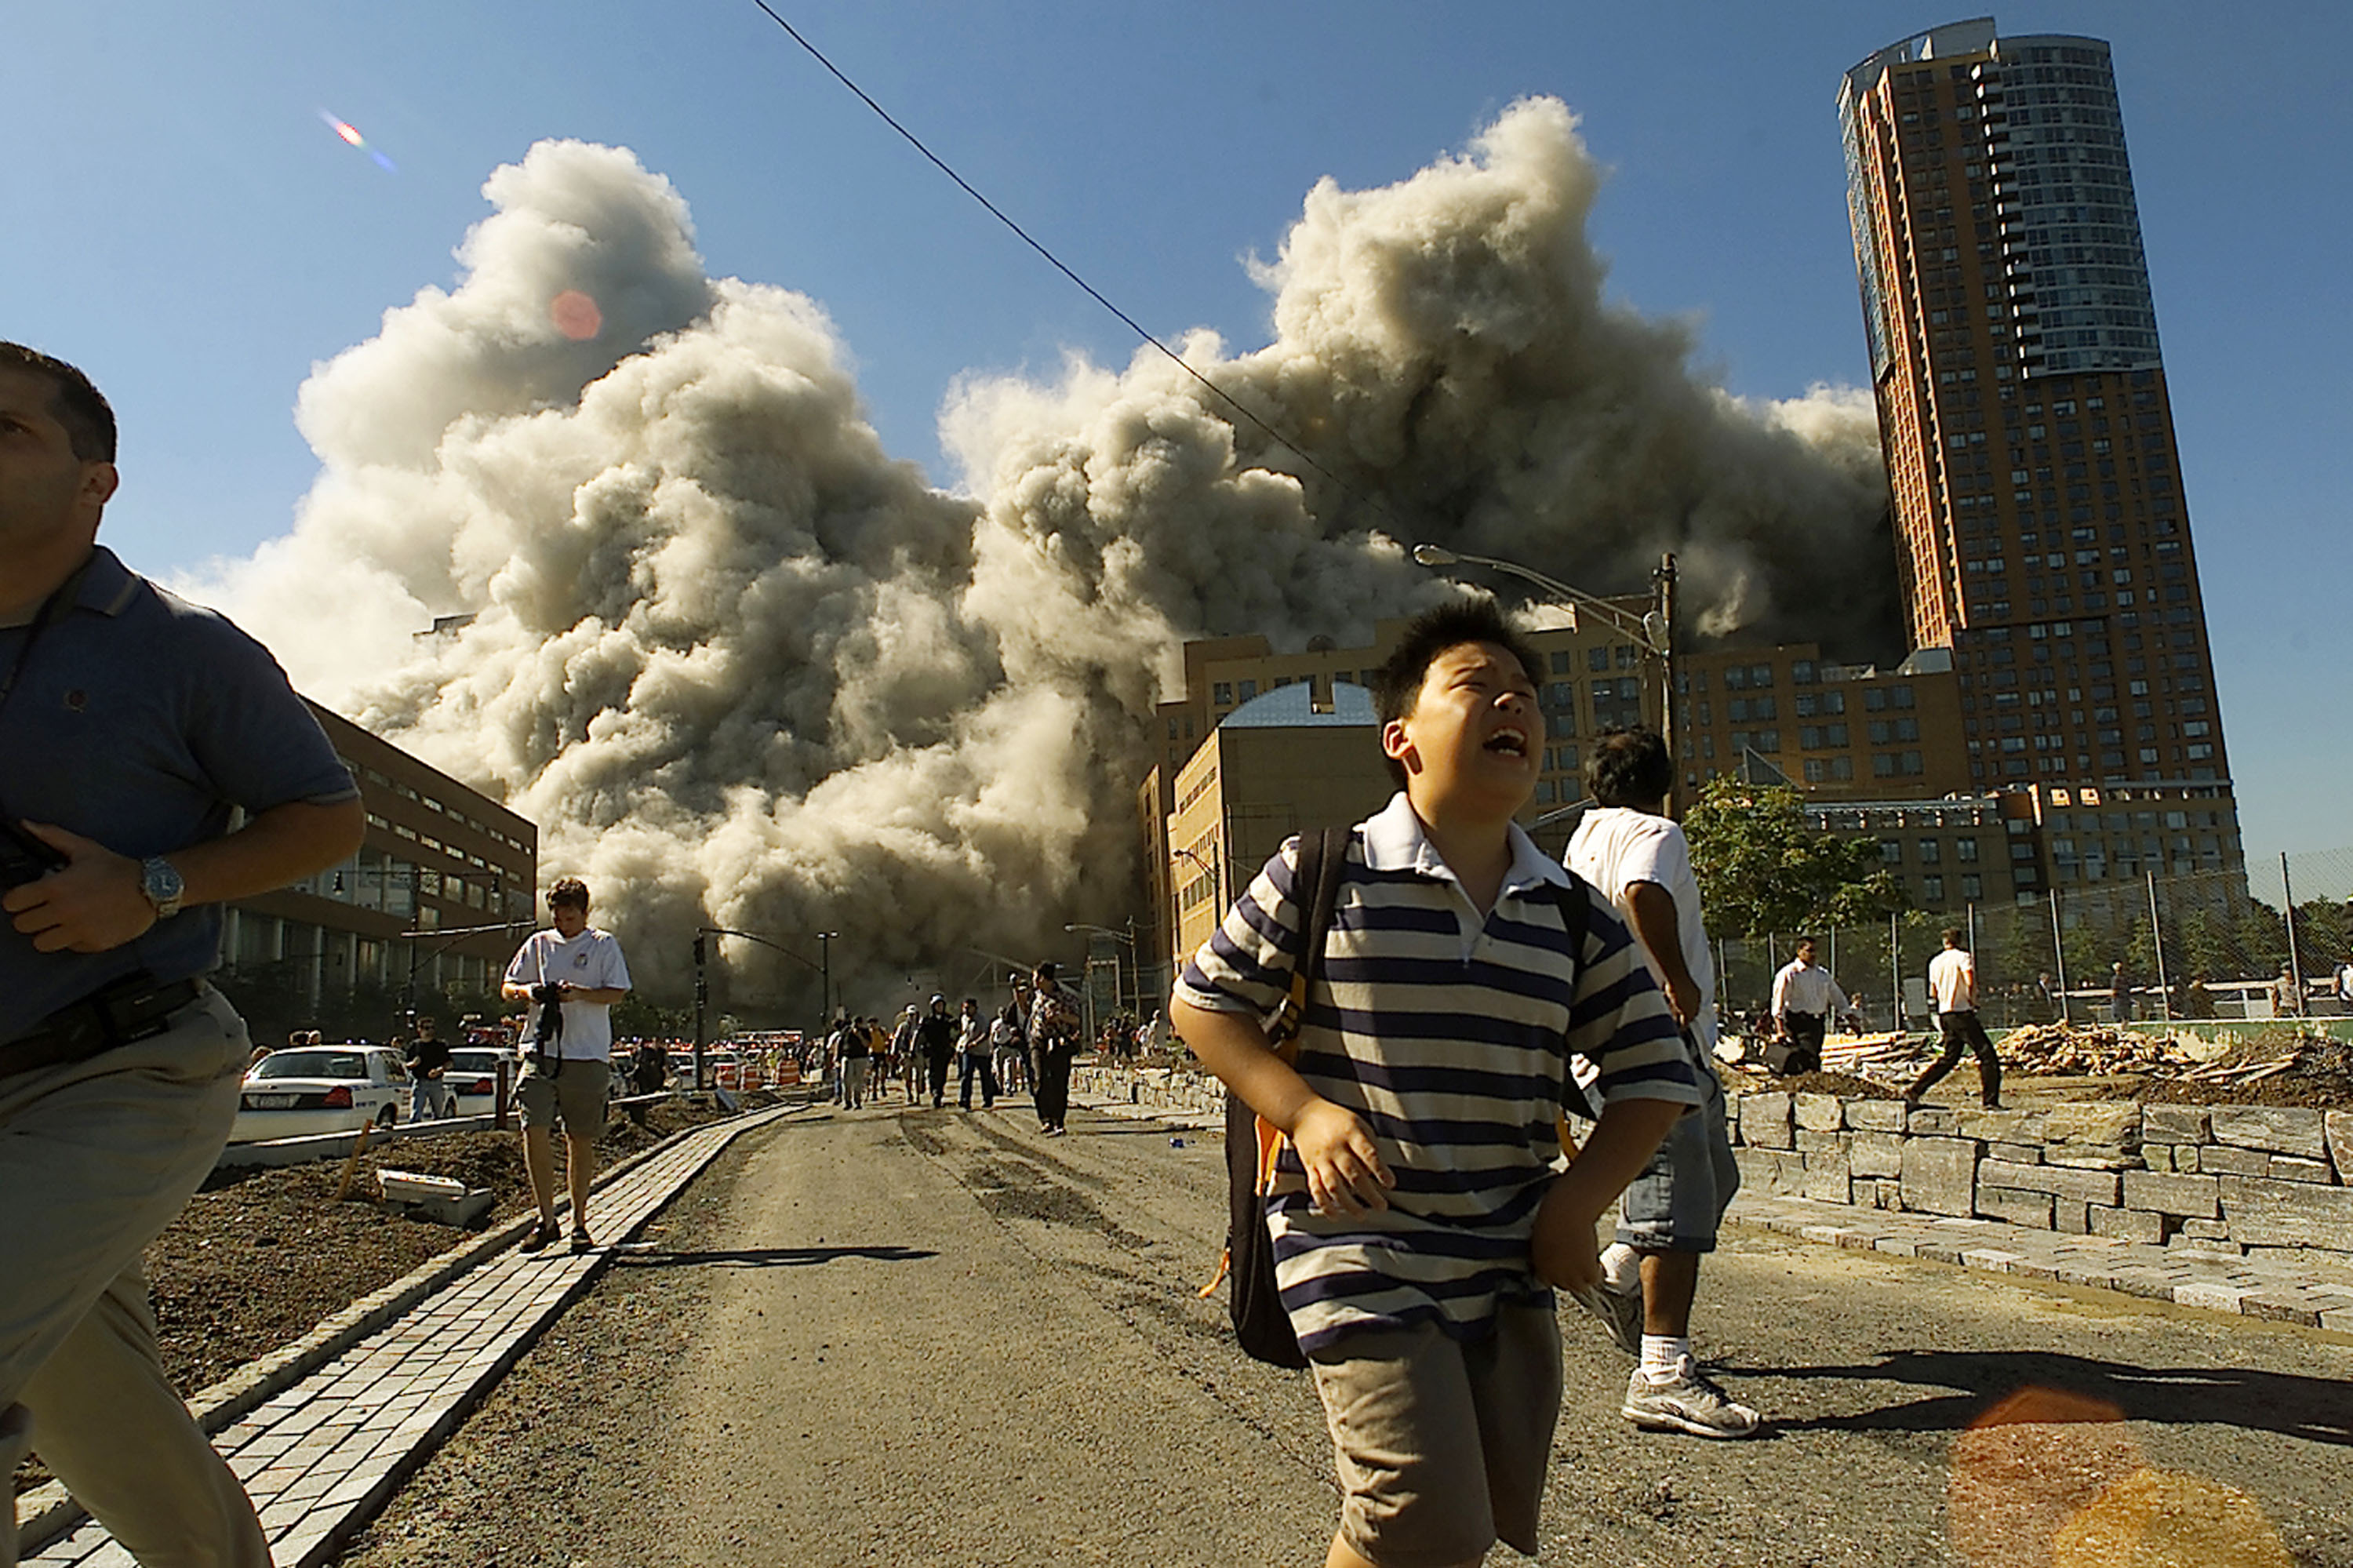 20 years later: These 9/11 photos remain just as haunting